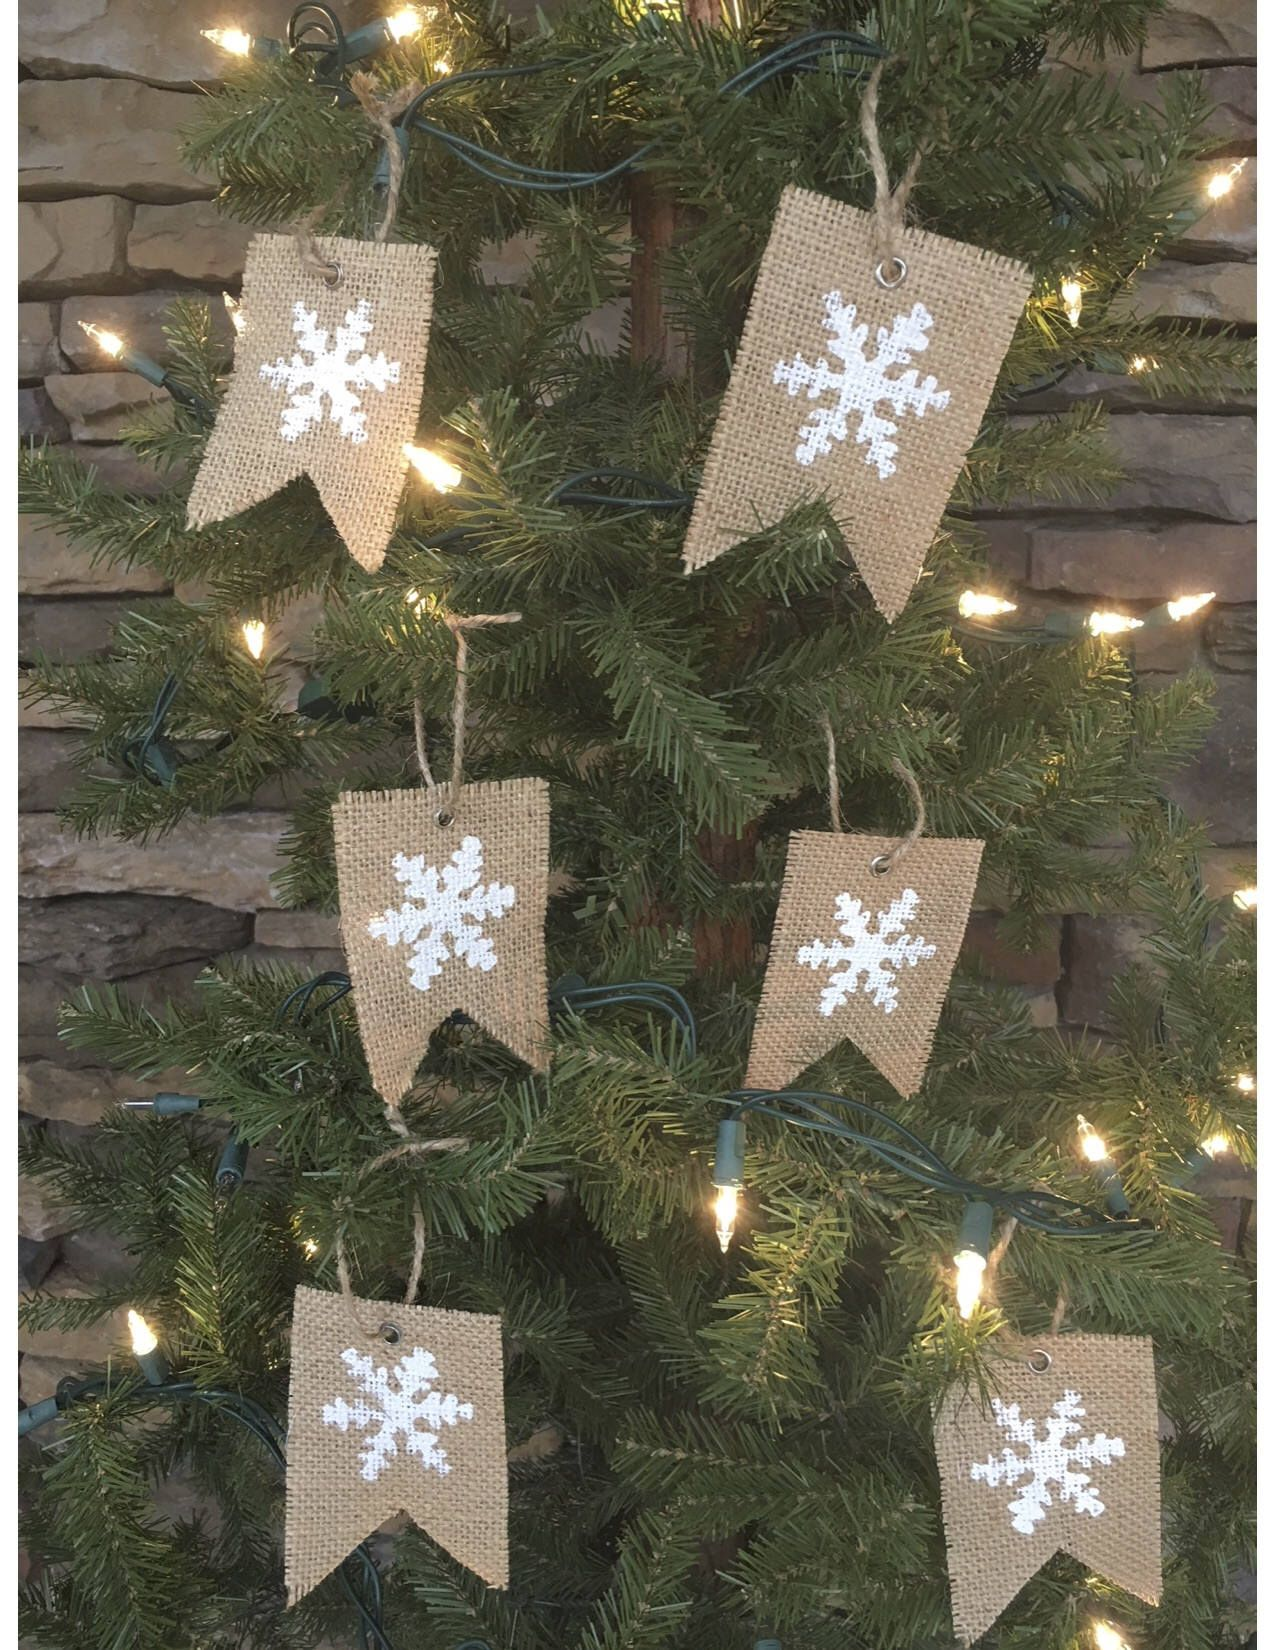 Burlap Christmas Tree Ornaments Christmas Tree Ornaments Burlap Snowflake Ornaments Set Of Burlap Ornaments Christmas Decor Christmas Banners Christmas Stencils Burlap Christmas